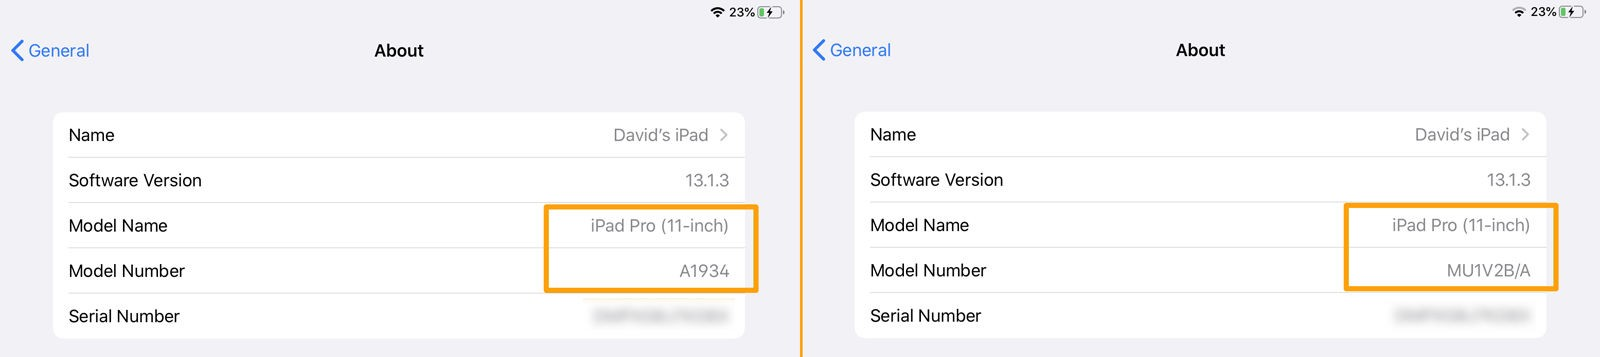 How to identify which iPad you have: Settings